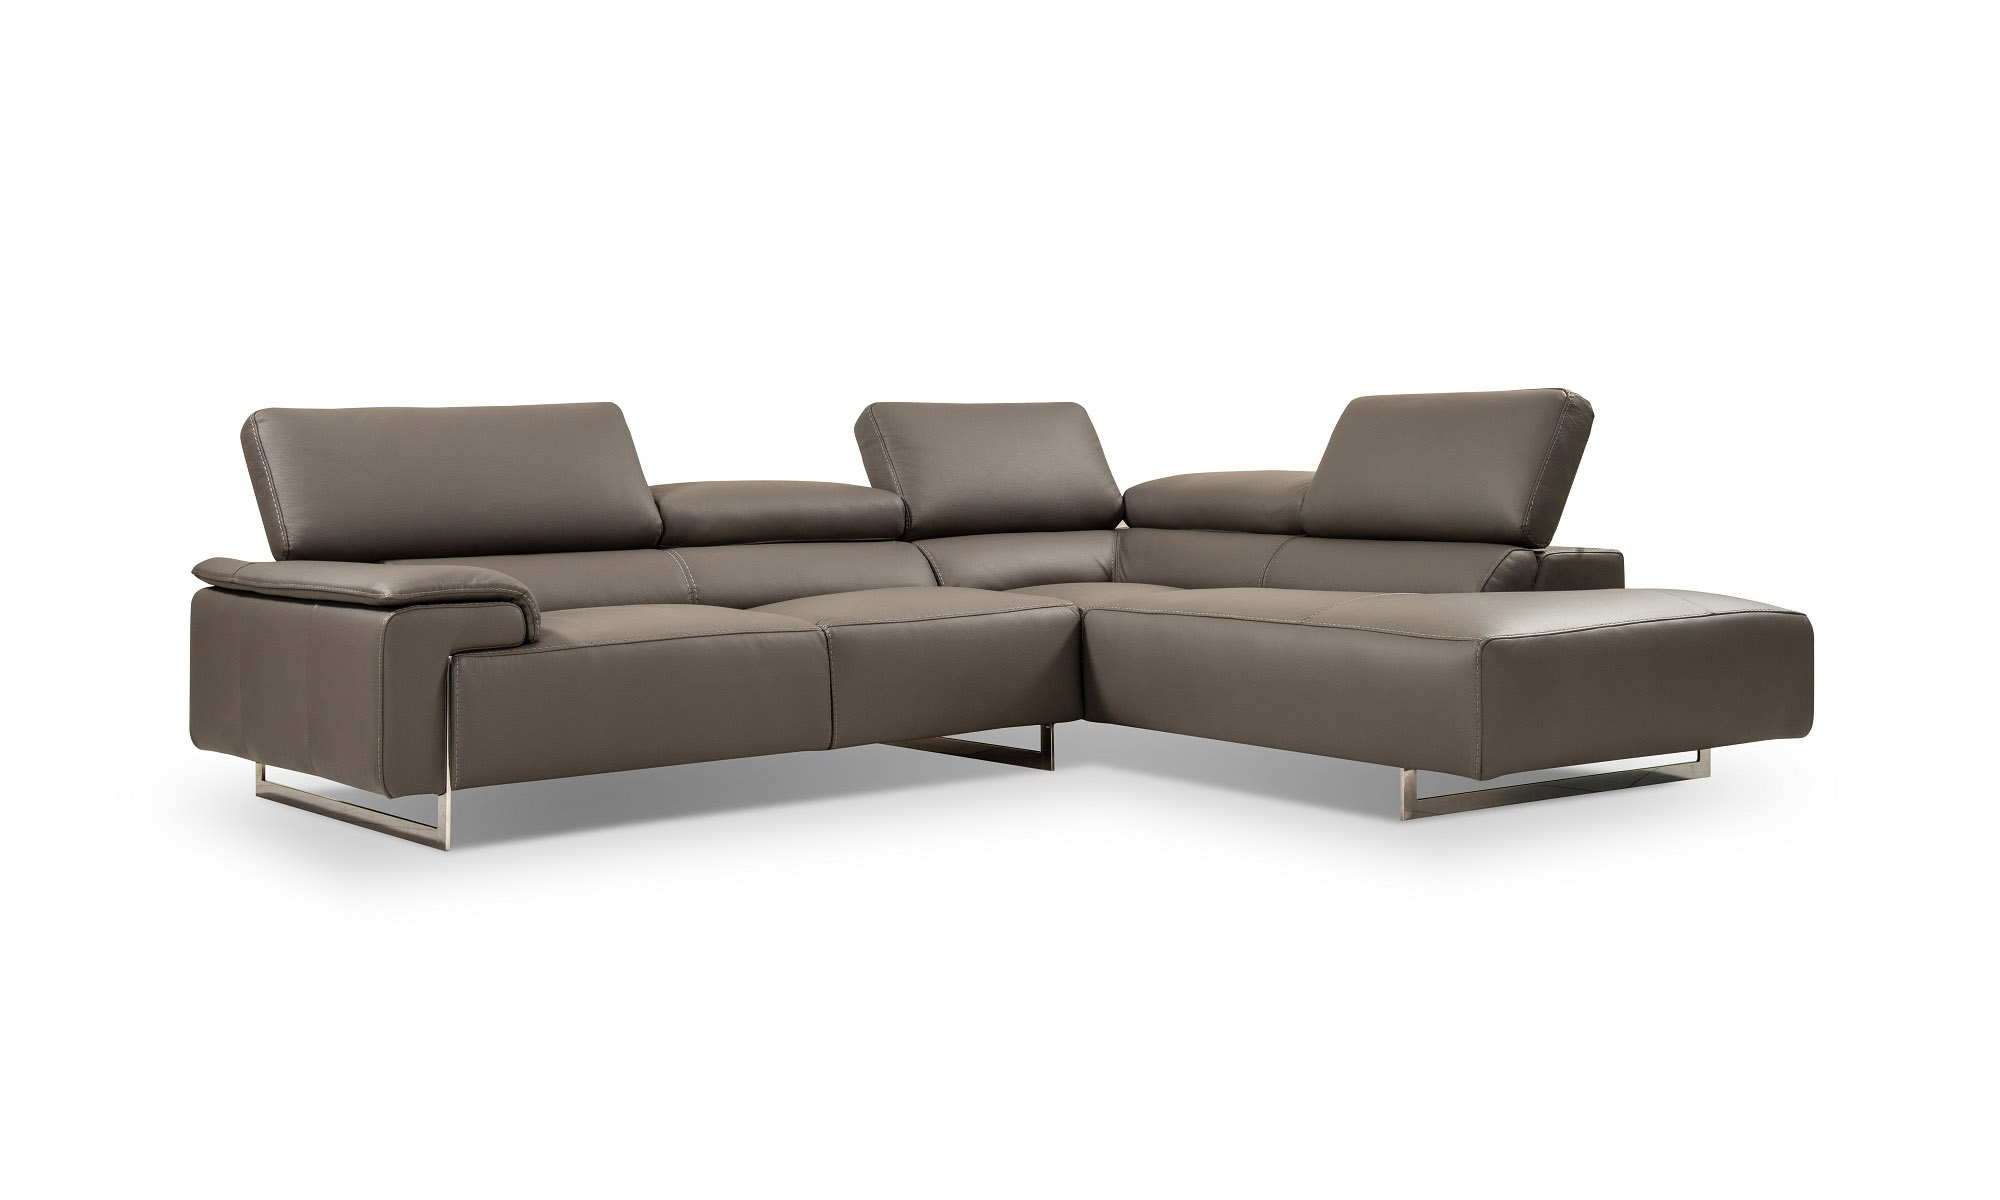 Classic Leather Sectional Sofa Upholstered In Italian Leather